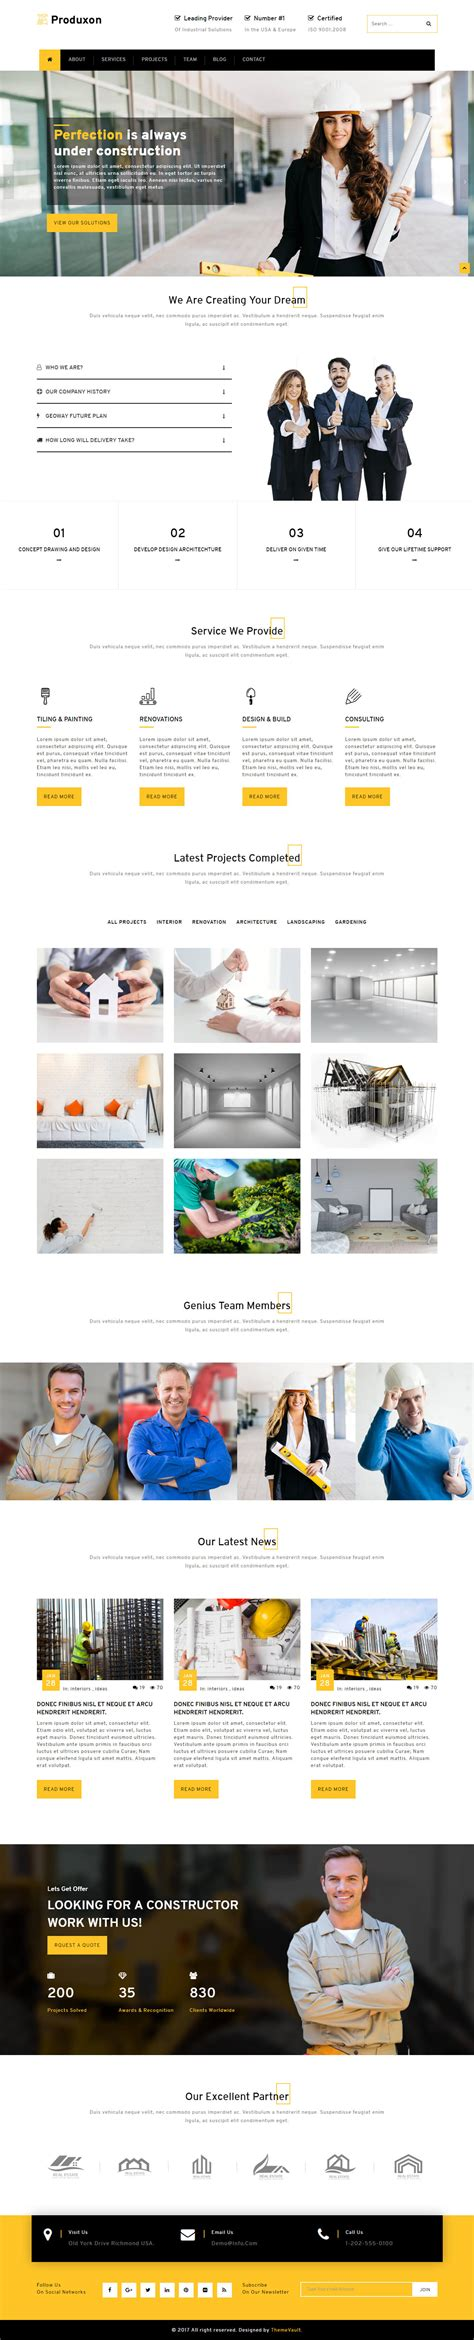 Produxon Responsive Manufacturing Website Templates Themevault Free Manufacturing Website Templates